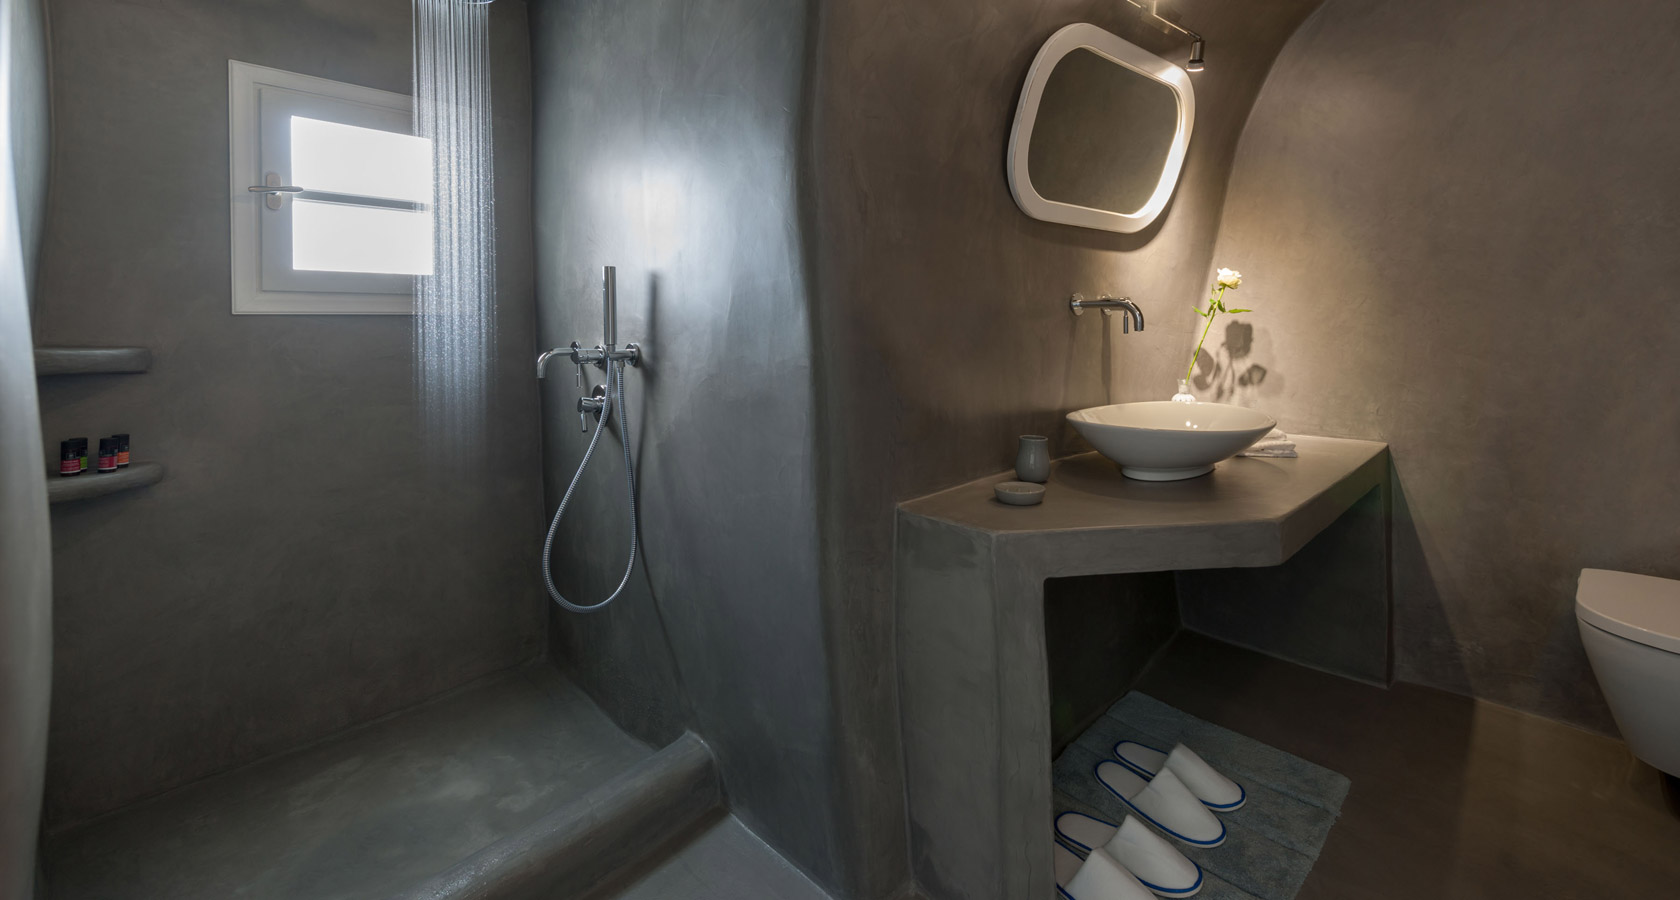 The bathroom of the Thirea superior suite in Santorini